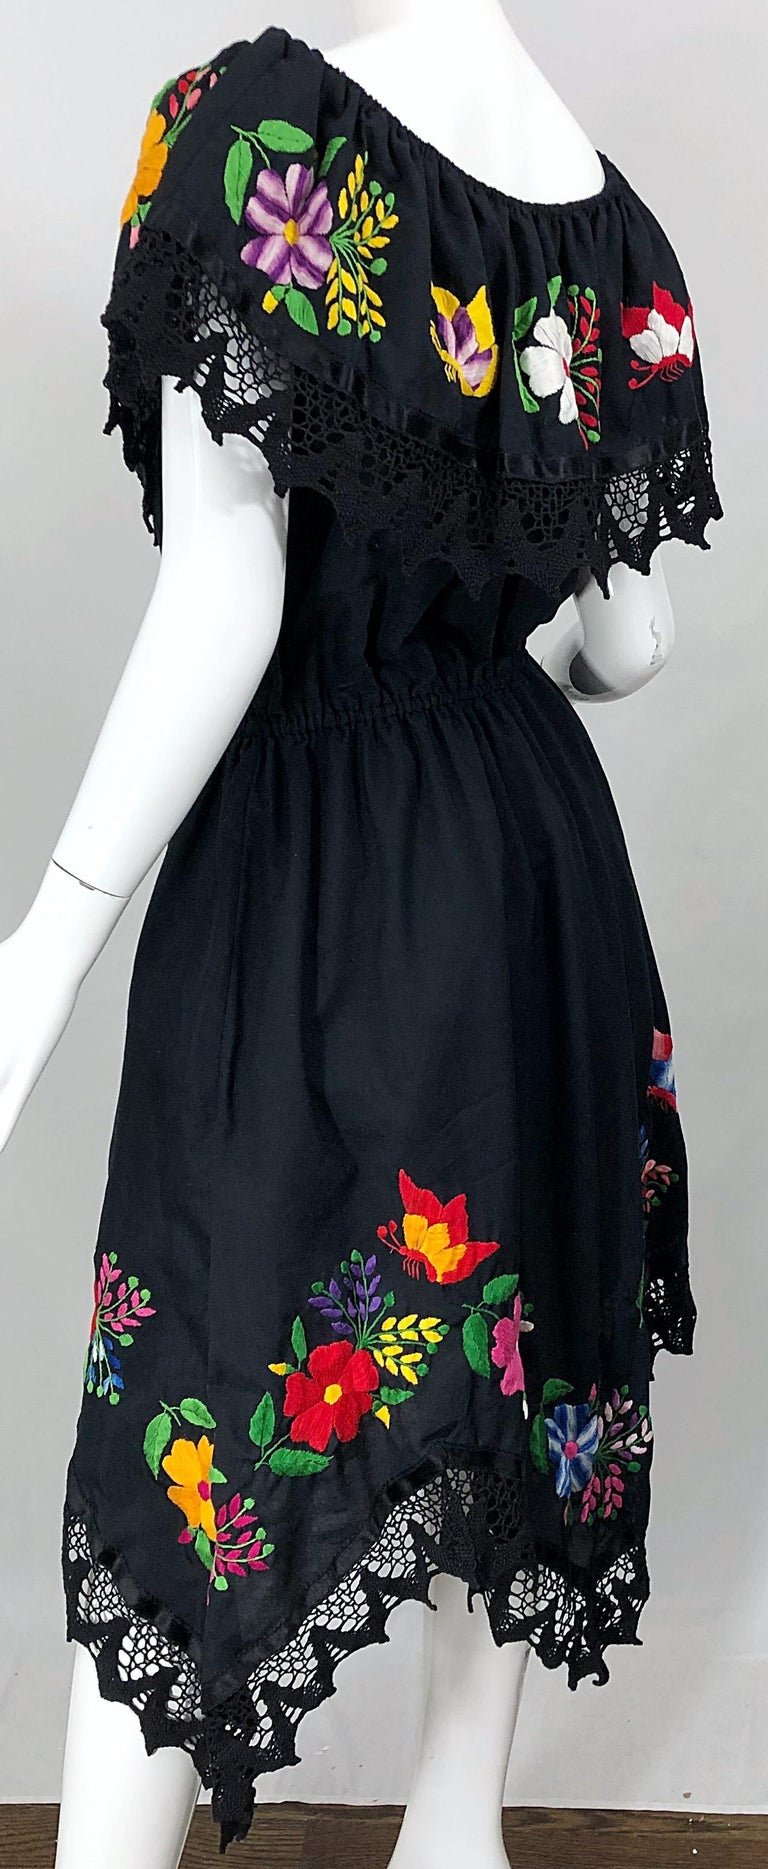 1970s Boho Chic Black Colorful Cotton Embroidered Handkerchief Hem Vintage Dress For Sale 9